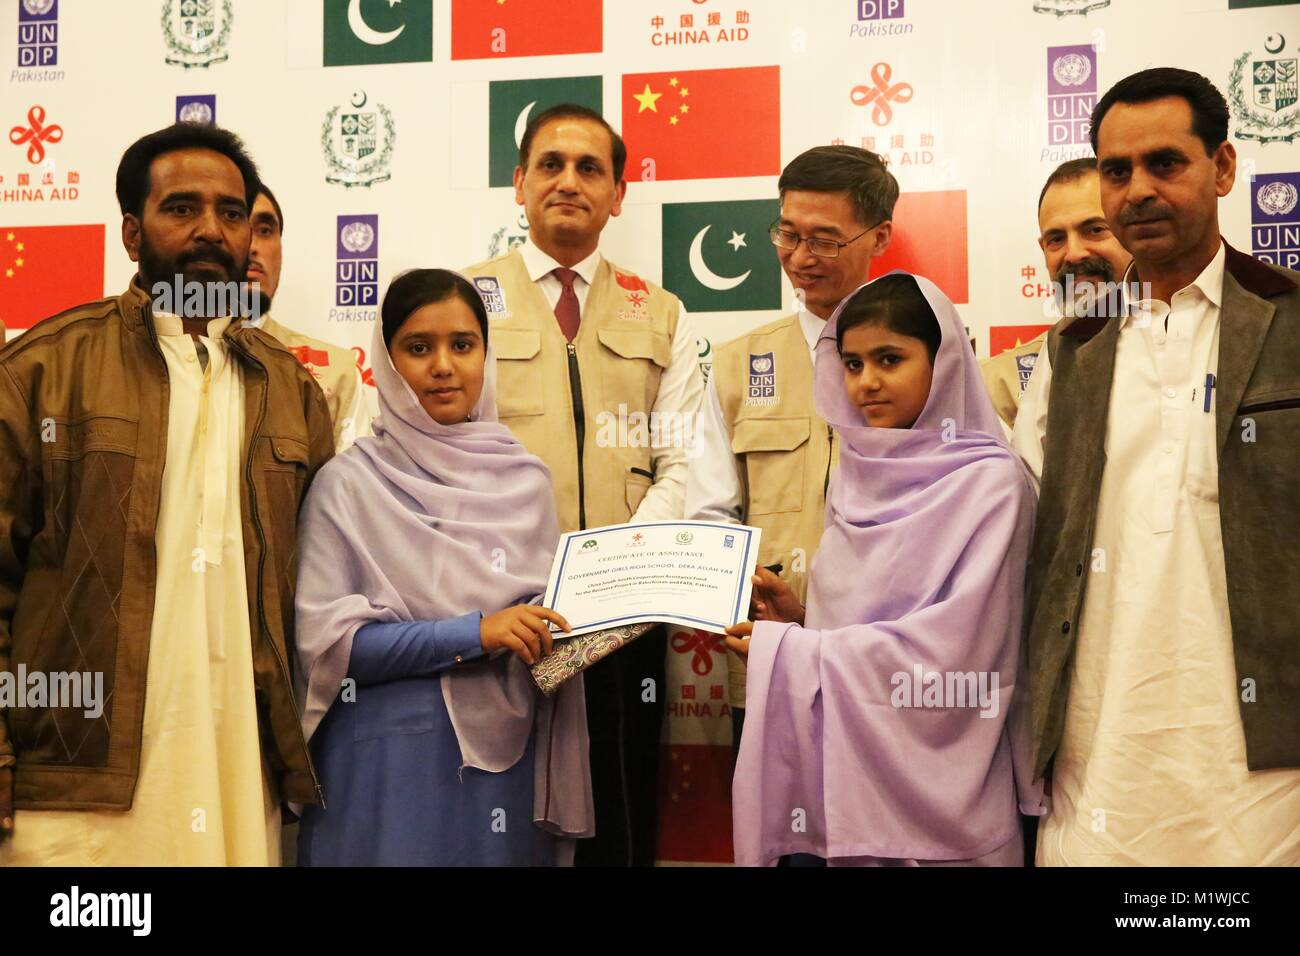 (180202) -- ISLAMABAD, Feb. 2, 2018 (Xinhua) -- Students from Balochistan receive assistance from 'China South - Stock Image